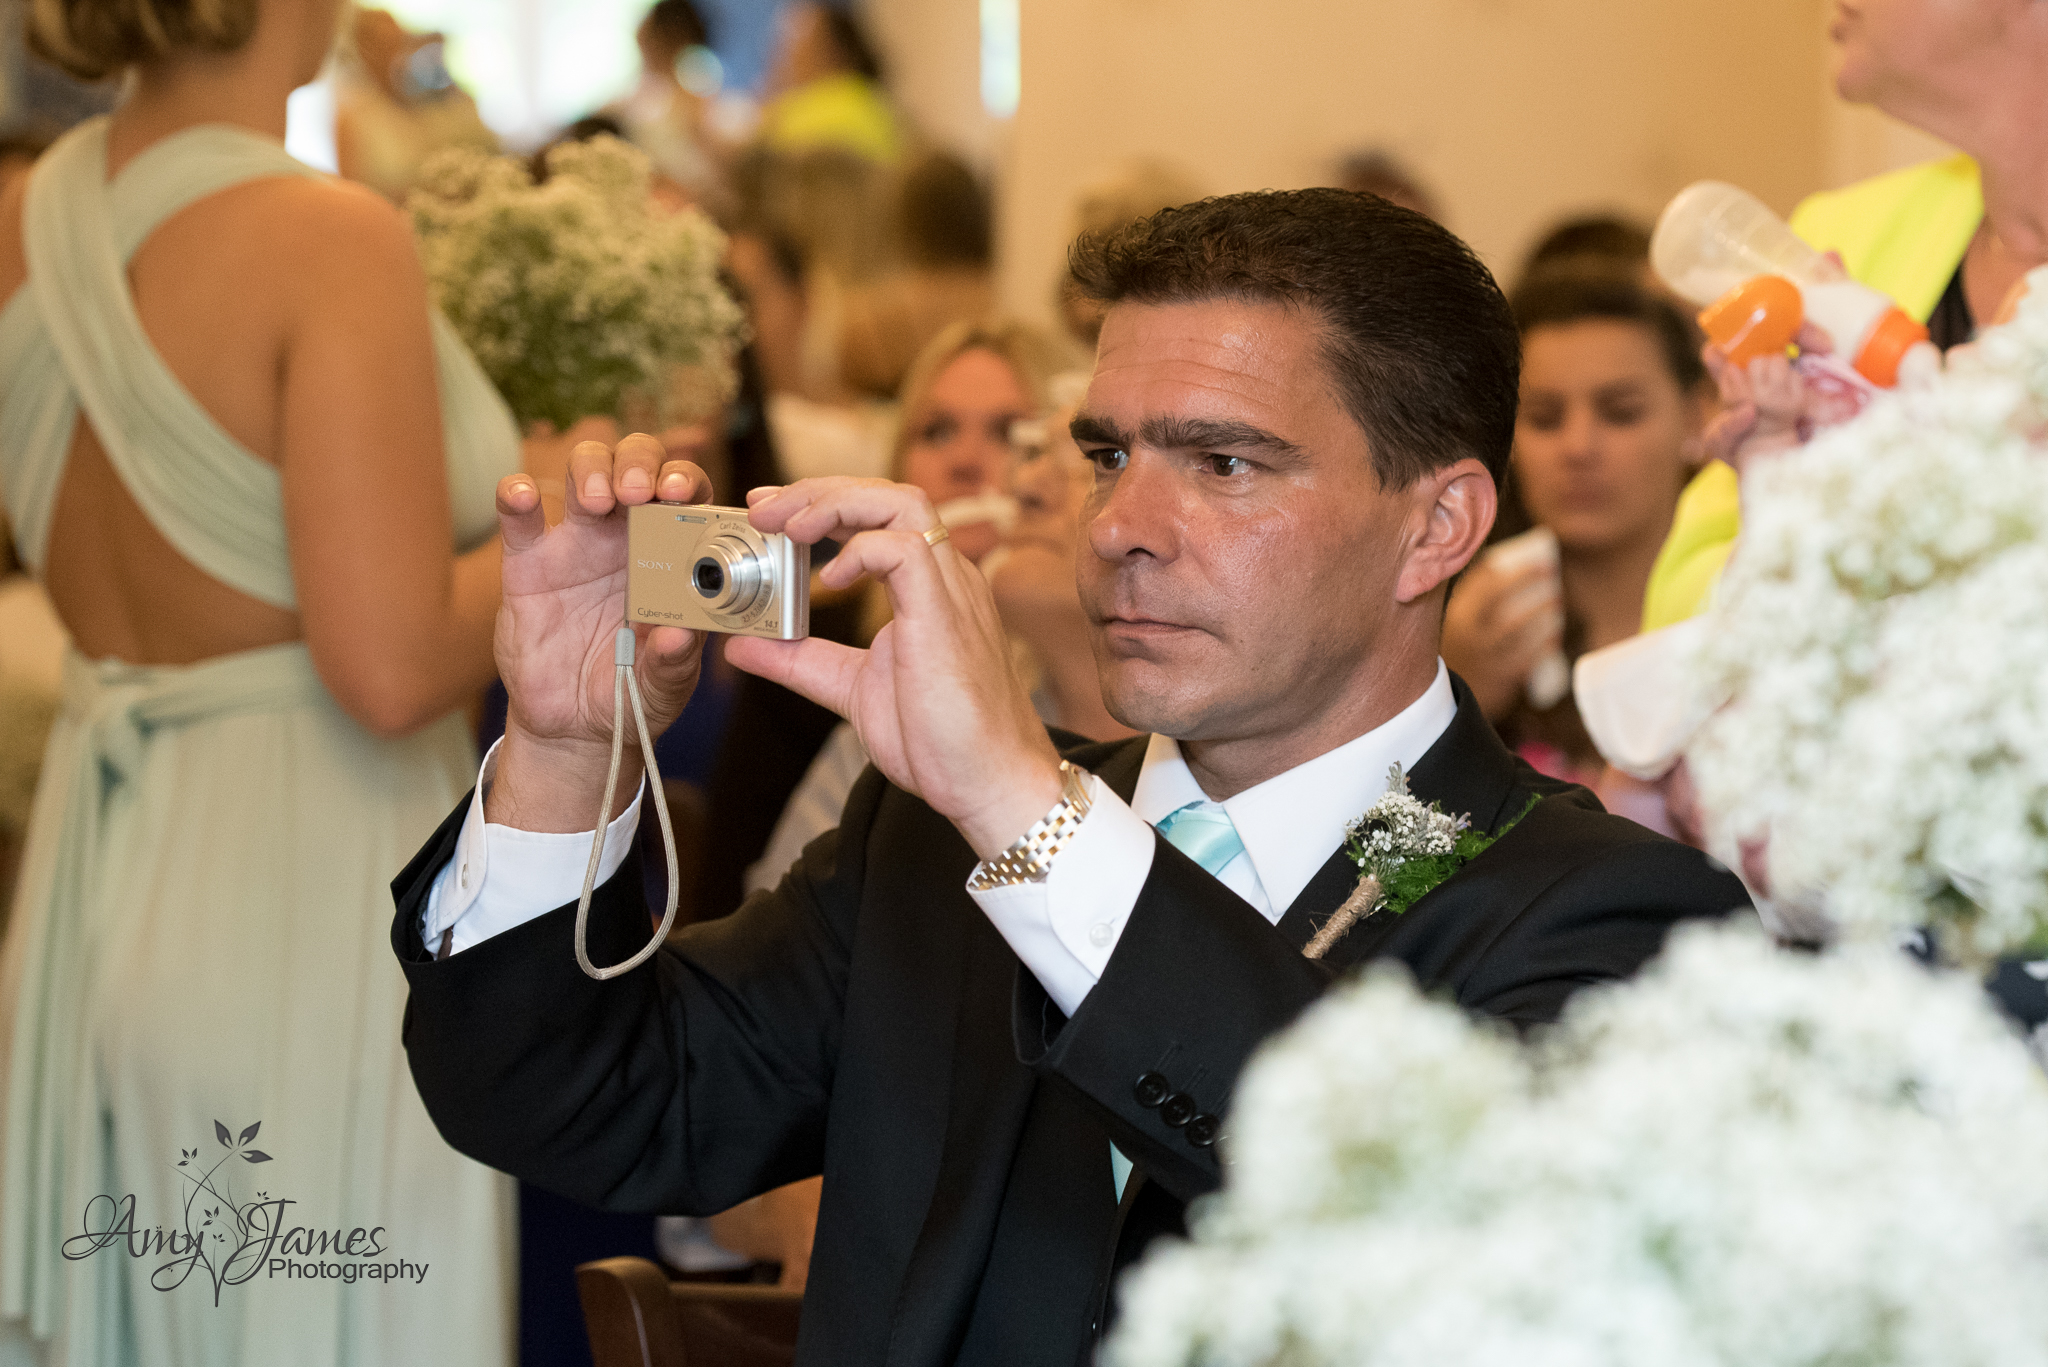 Hampshire wedding photographer / Fleet wedding phohotgrapher